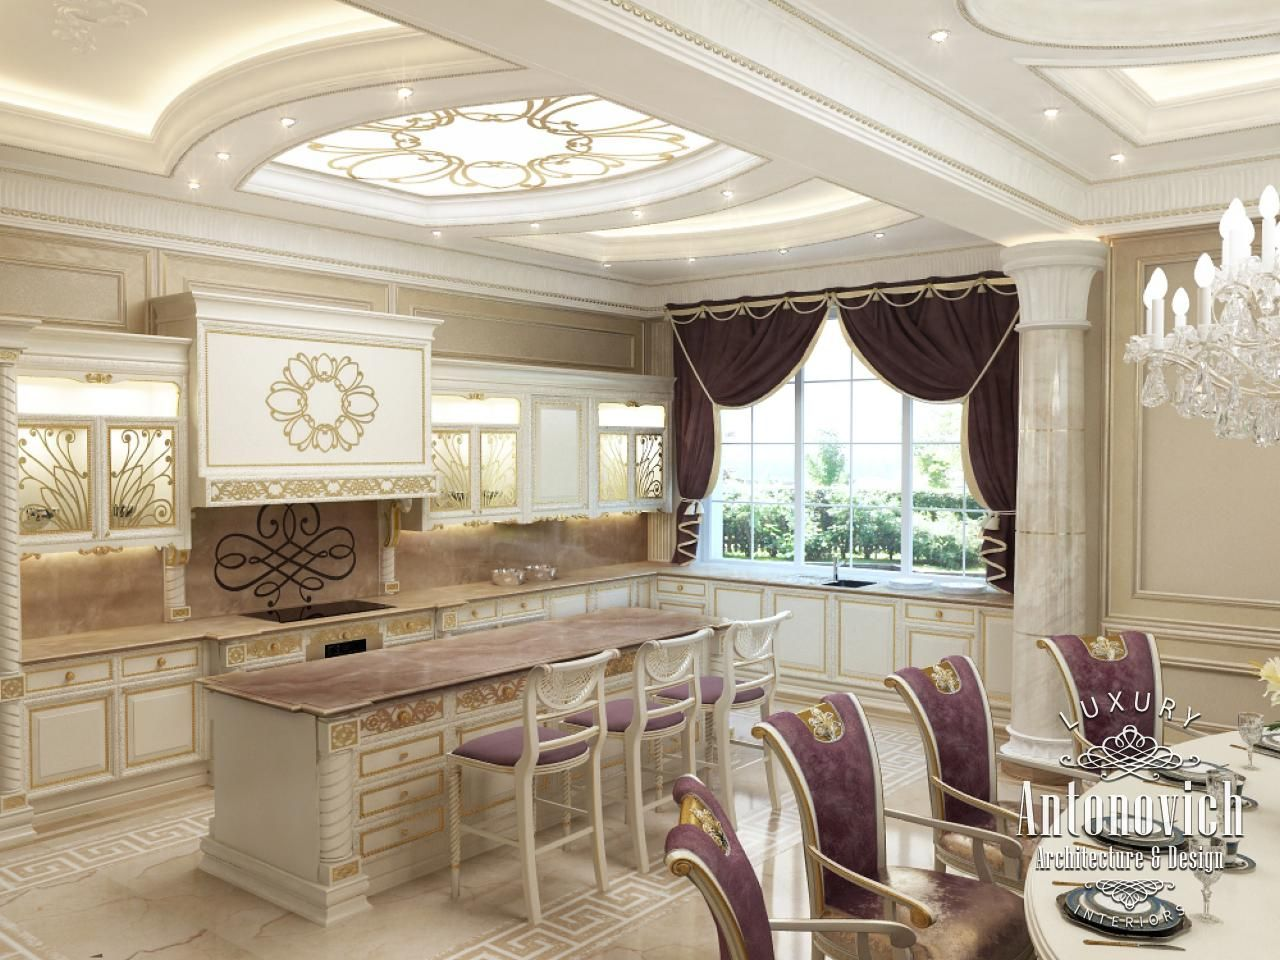 Kitchen design in dubai kitchen interior in neoclassical for Neoclassical bedroom interior design